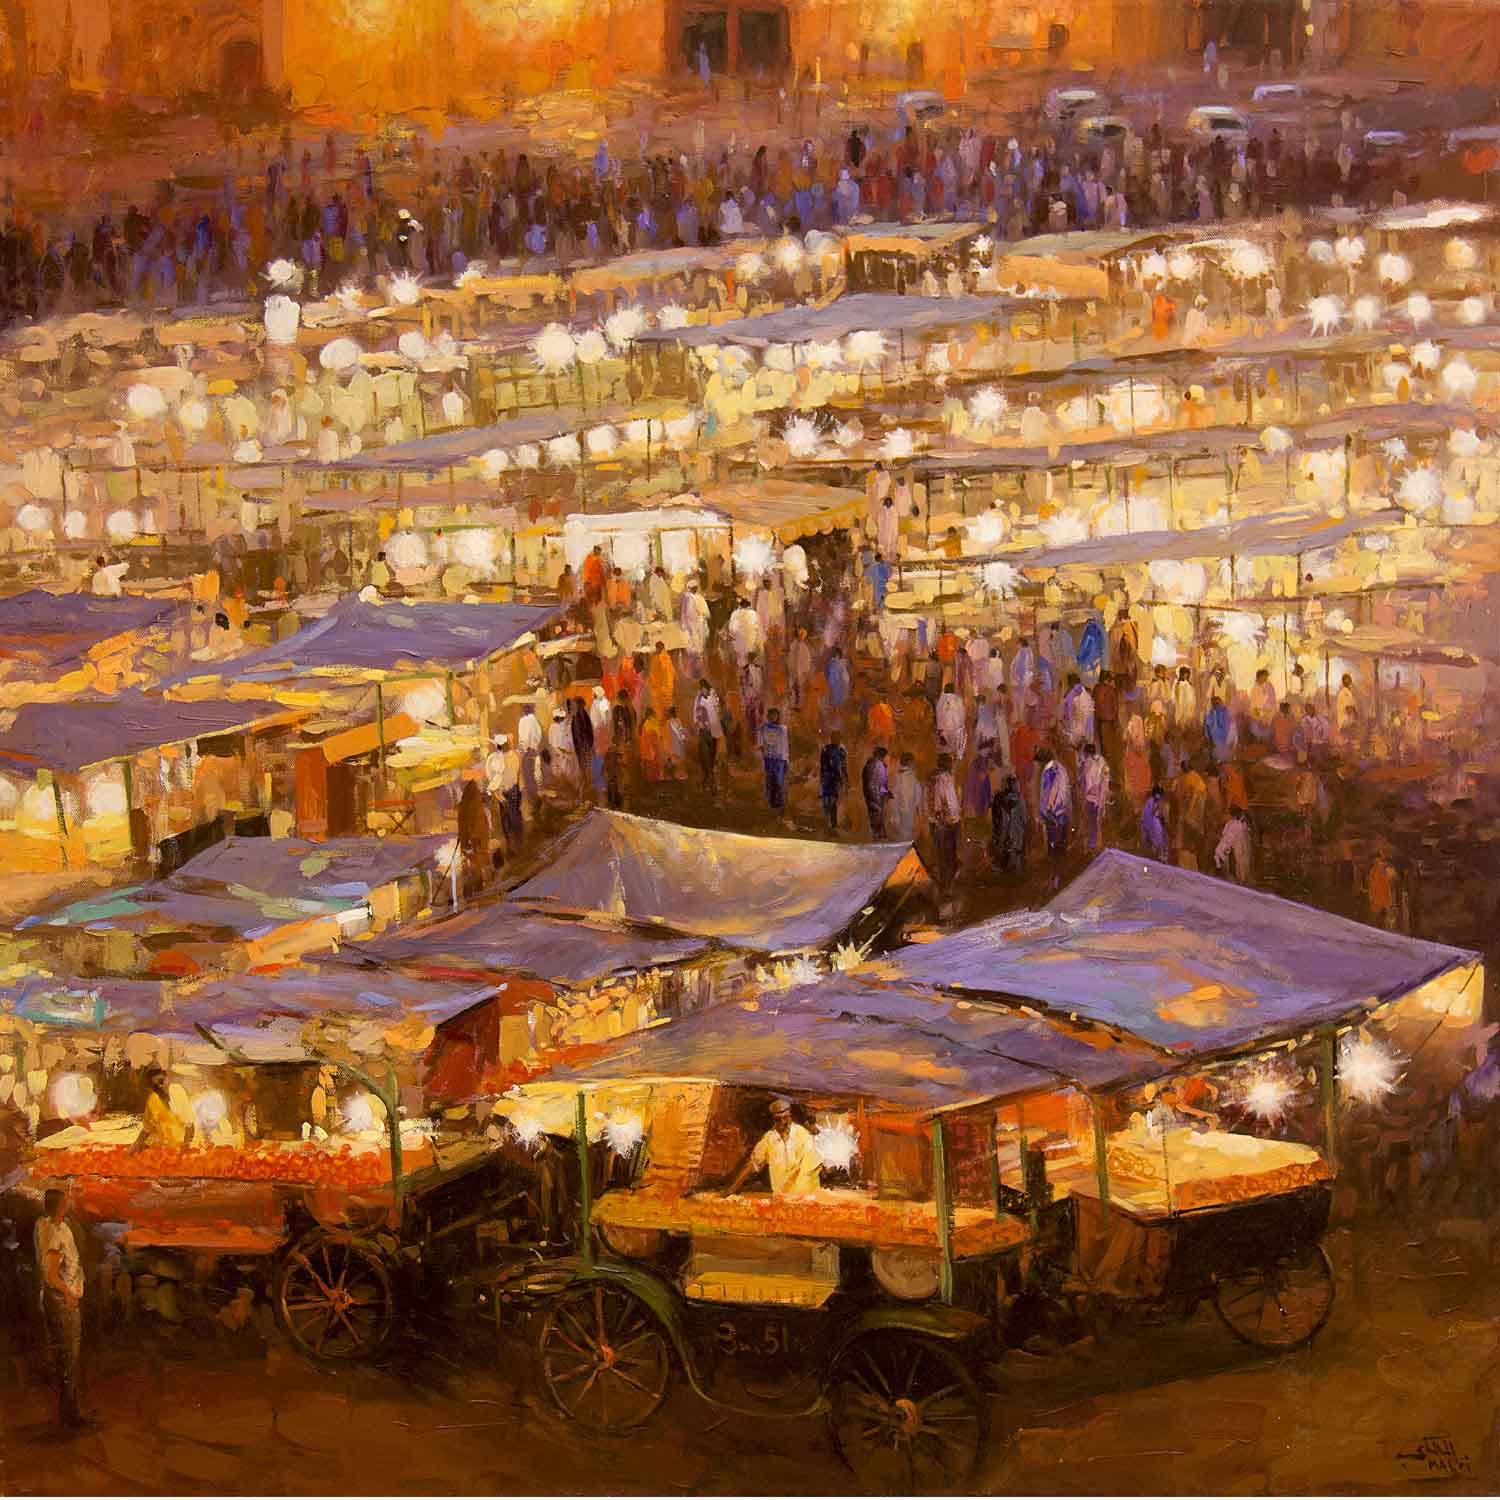 the place jemaa el fna in the night by ELMALKI